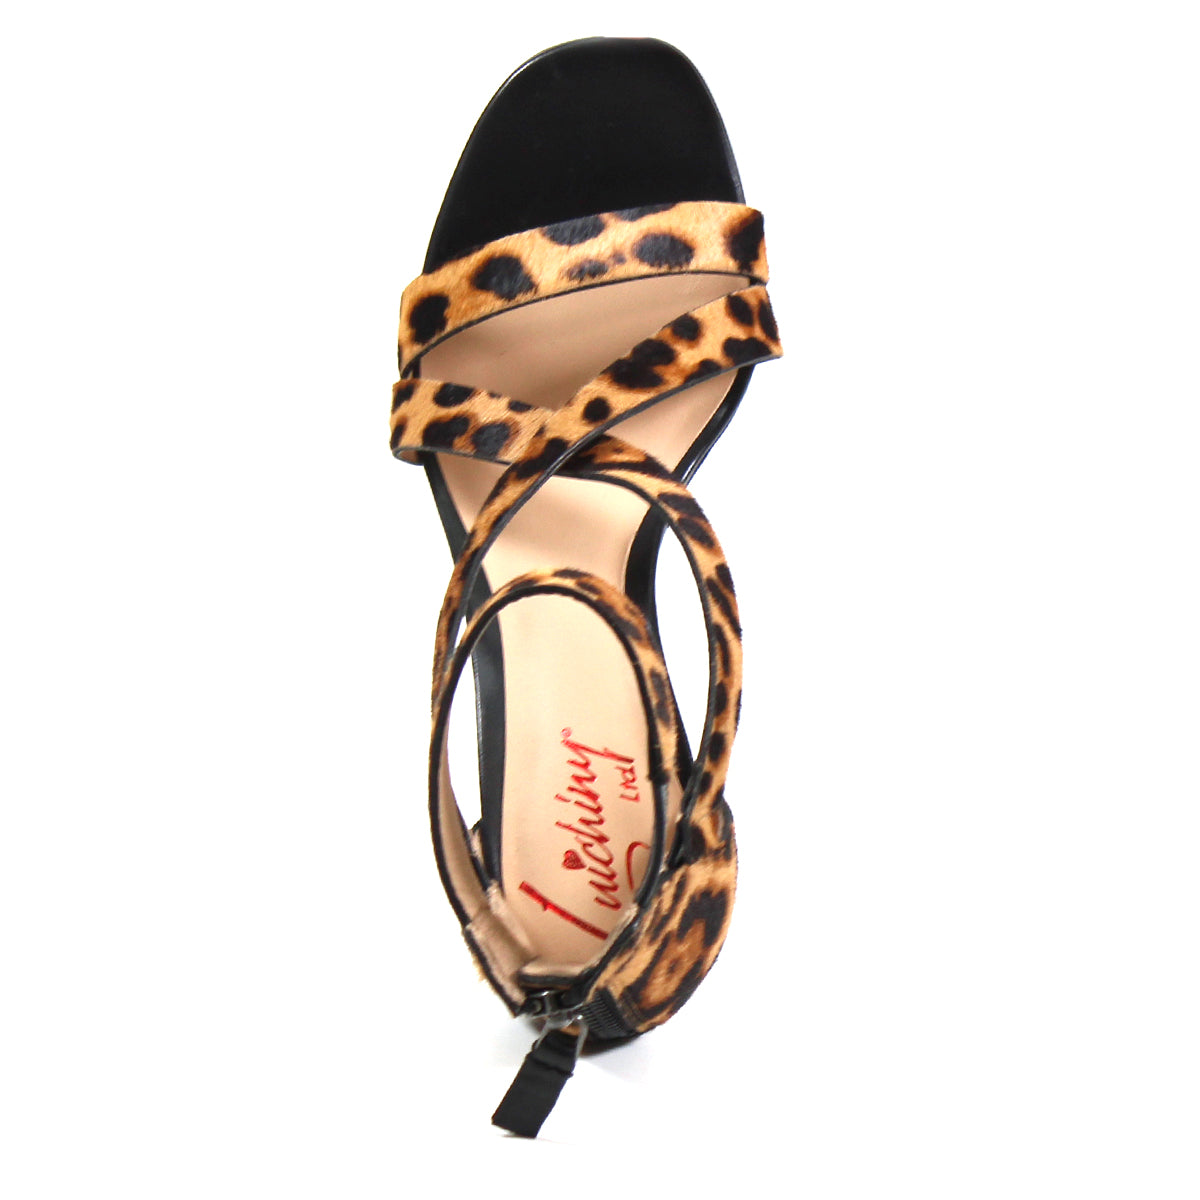 CLICK ON IT by Luichiny Ltd is a leopard print sandal accented by criss-cross straps creating a cool cut-out design that demands attention with this 3.5-inch stiletto heel. This edgy-chic and breathable sandal comes with a supple kidskin leather padded insole, counter zip, and elastic ankle strap for superior comfort and support.